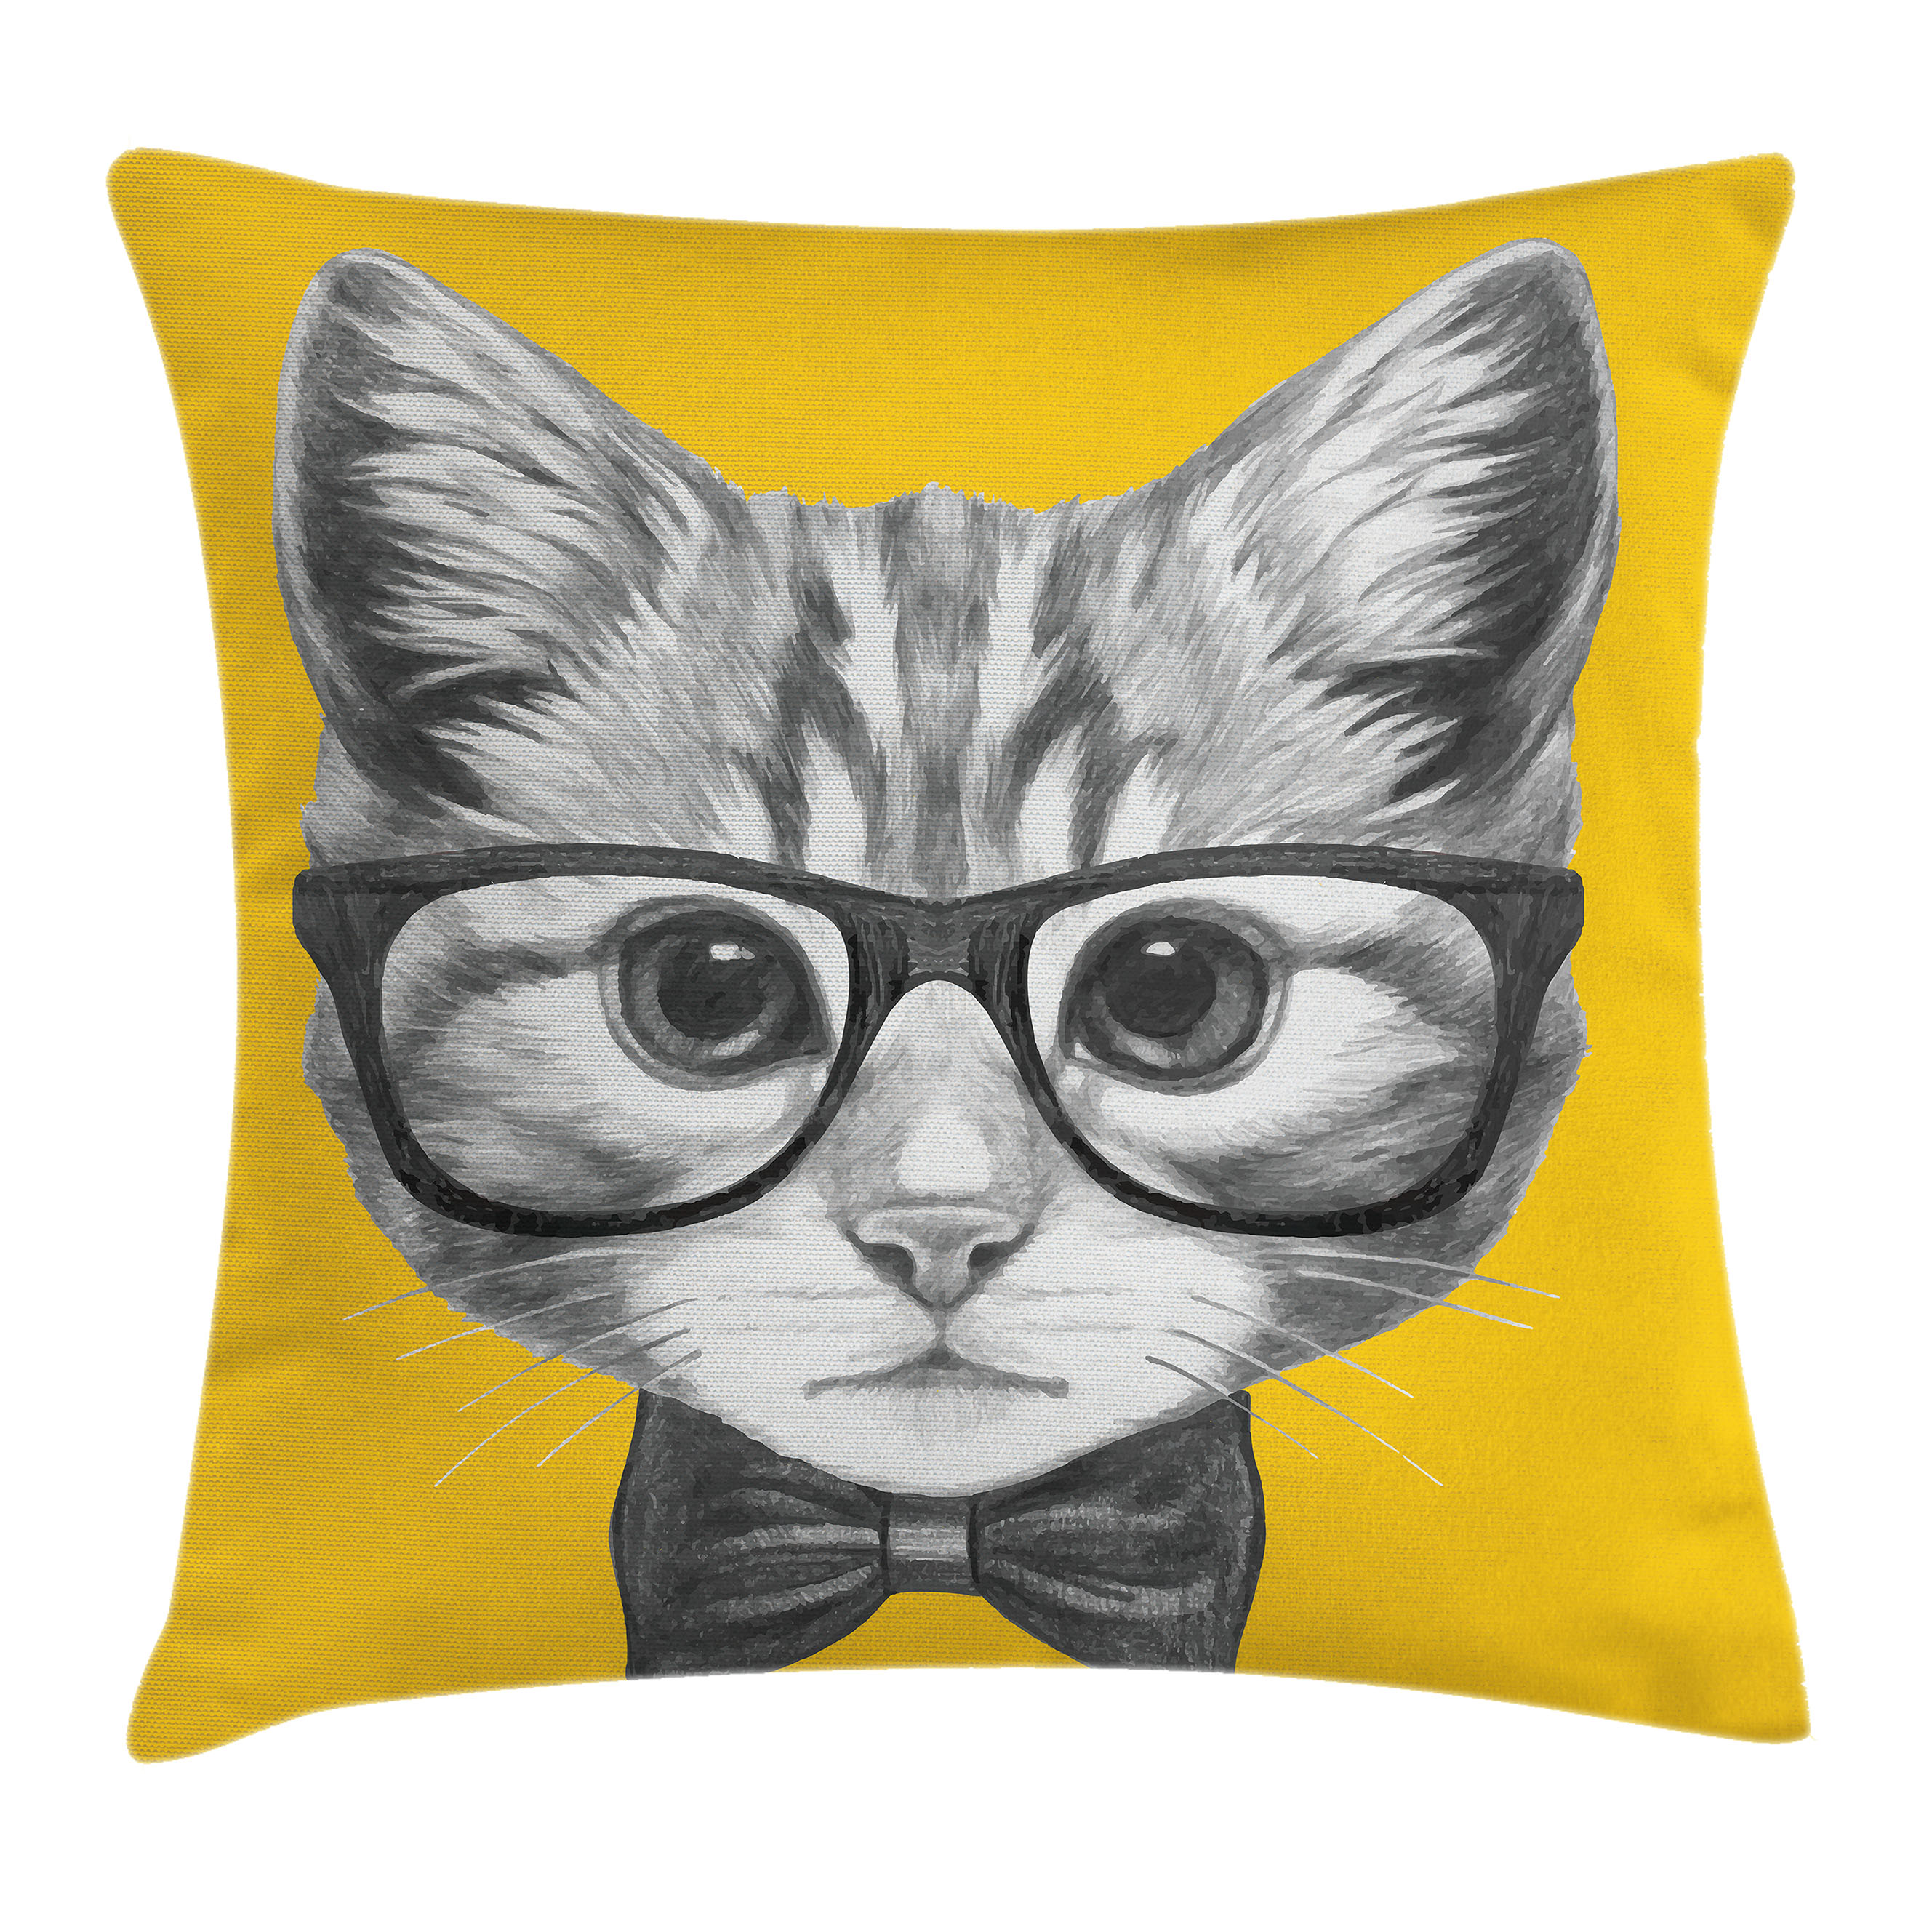 Animal Decor Throw Pillow Cushion Cover, Sketchy Hand Drawn Design Baby Hipster Cat Cute Kitten with Glasses Image, Decorative Square Accent Pillow Case, 16 X 16 Inches, Black and White, by Ambesonne